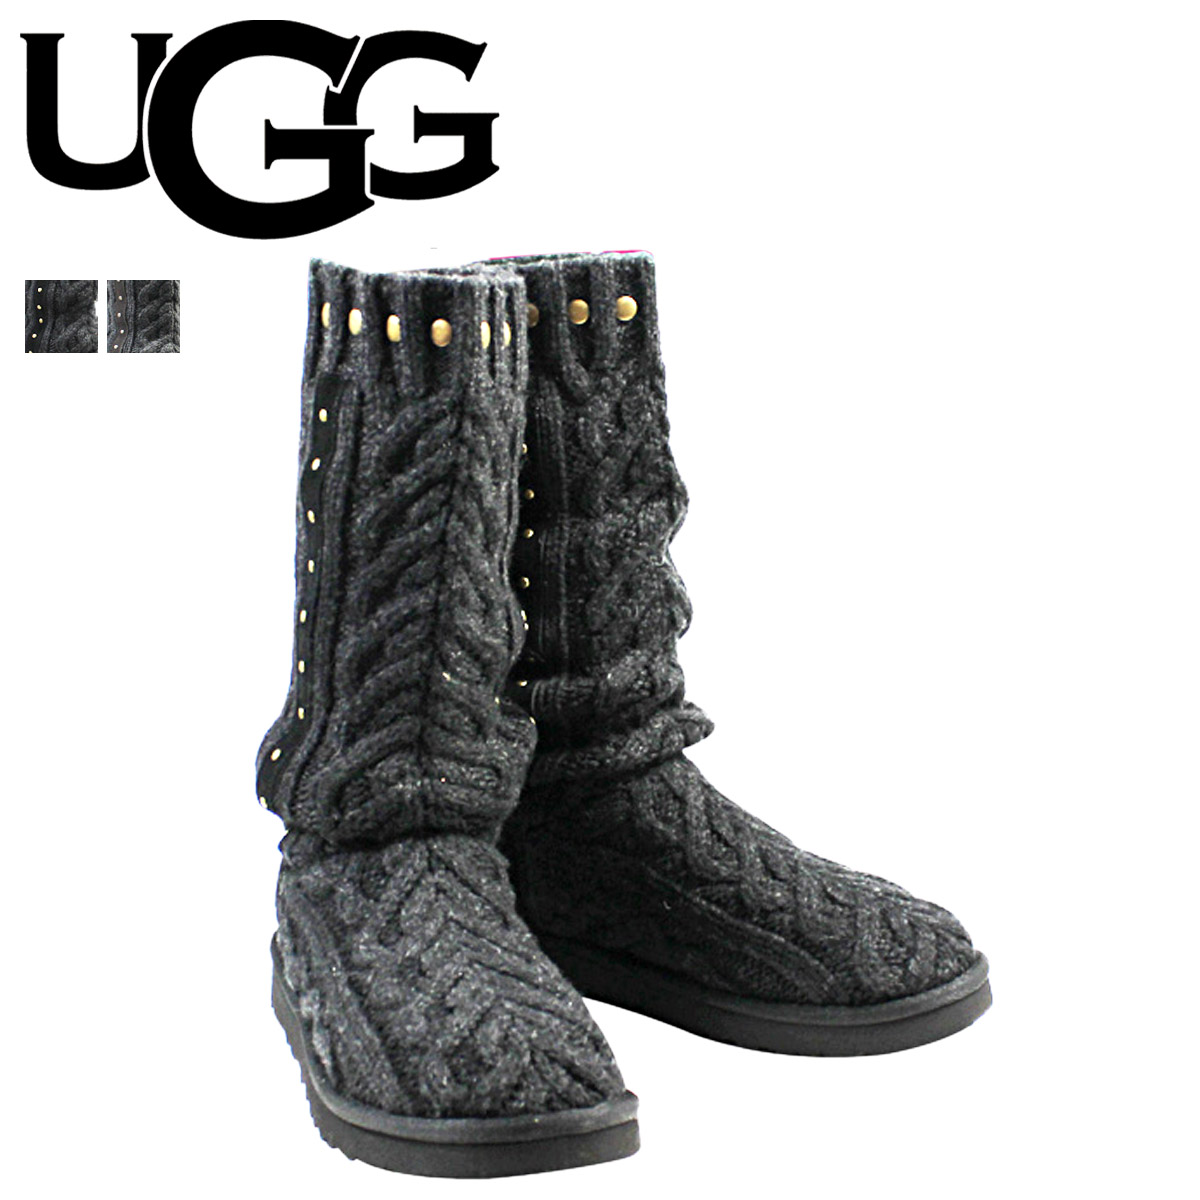 536ea5eaebc Whats up Sports   SOLD OUT  UGG UGG Feliciano Shearling boots knee ...